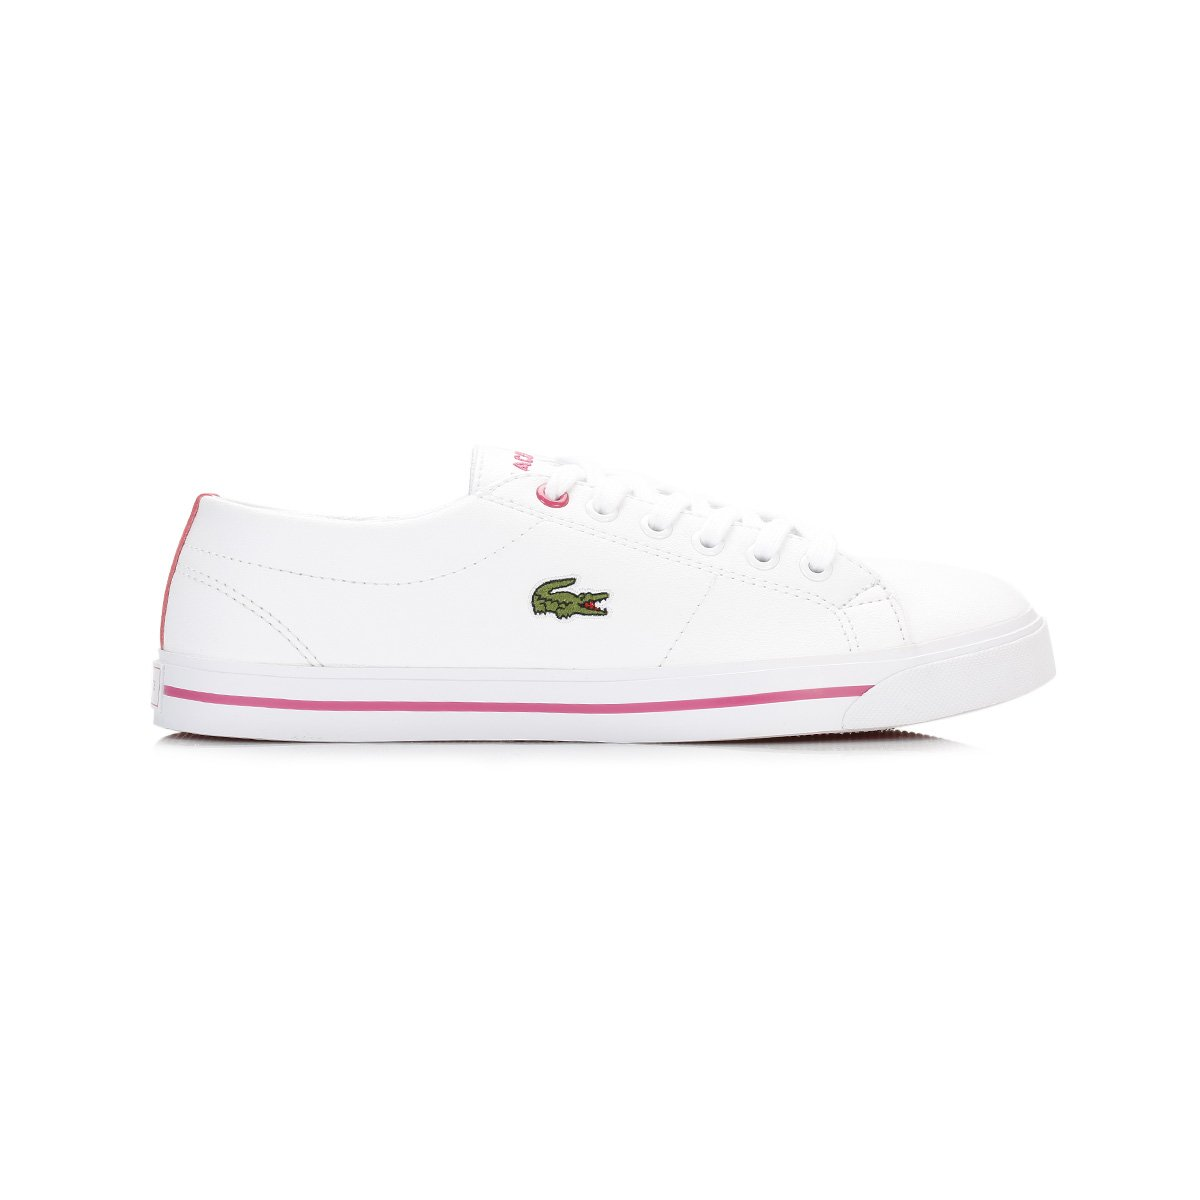 2cddad14e2e Lacoste Junior Girls Riberac Trainers in White Pink- Lace Fastening- Tonal